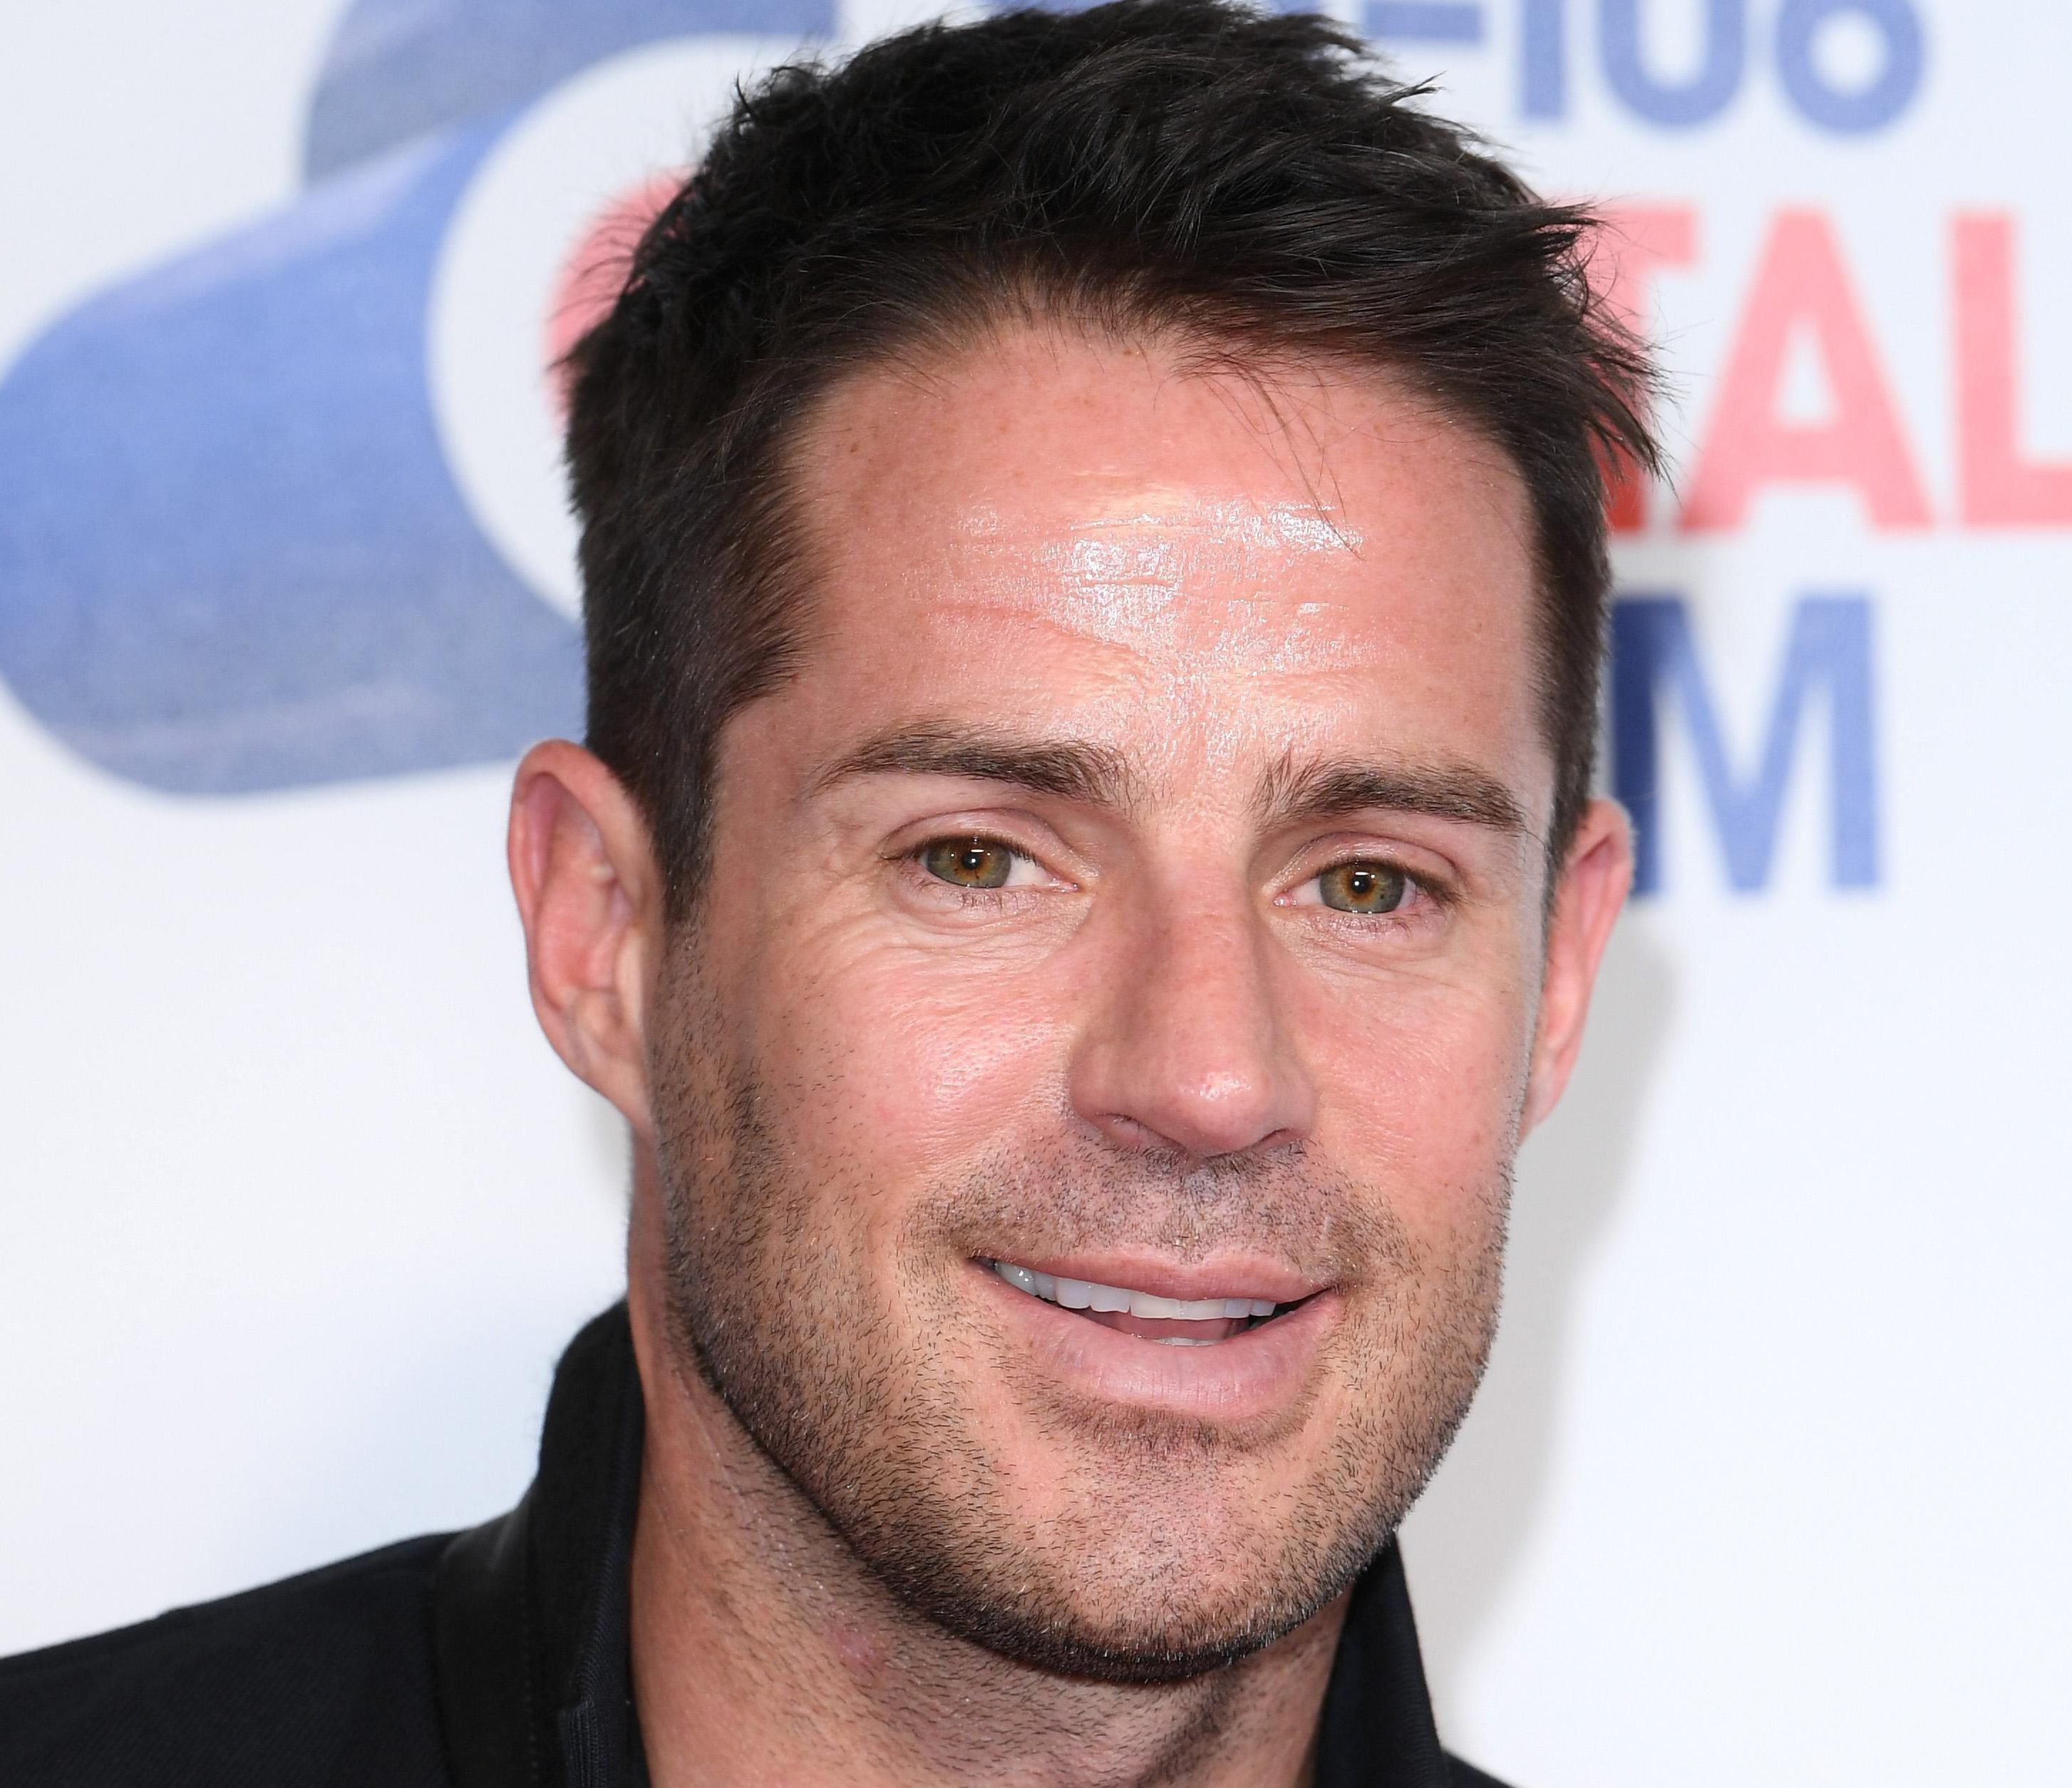 Jamie Redknapp refuses to rule out dating Emily Atack as he calls her a 'very nice girl'